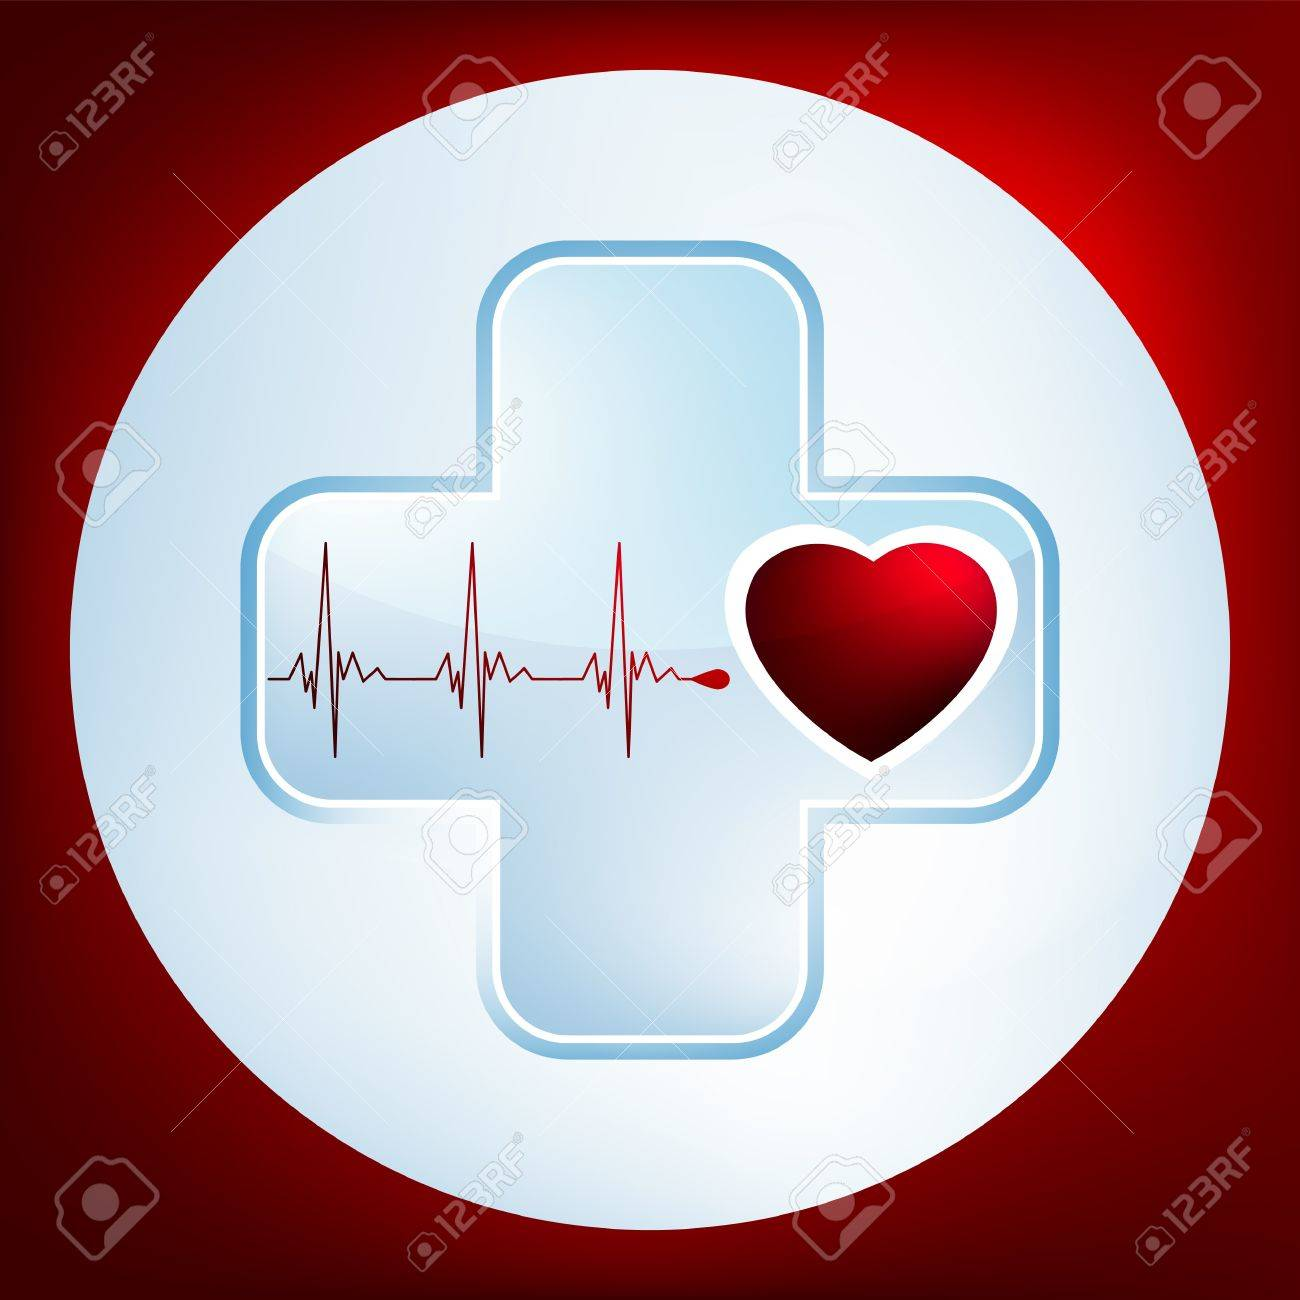 Heart and heartbeat symbol. Easy Editable Template. Without a transparency. EPS 8 vector file included Stock Vector - 9910237